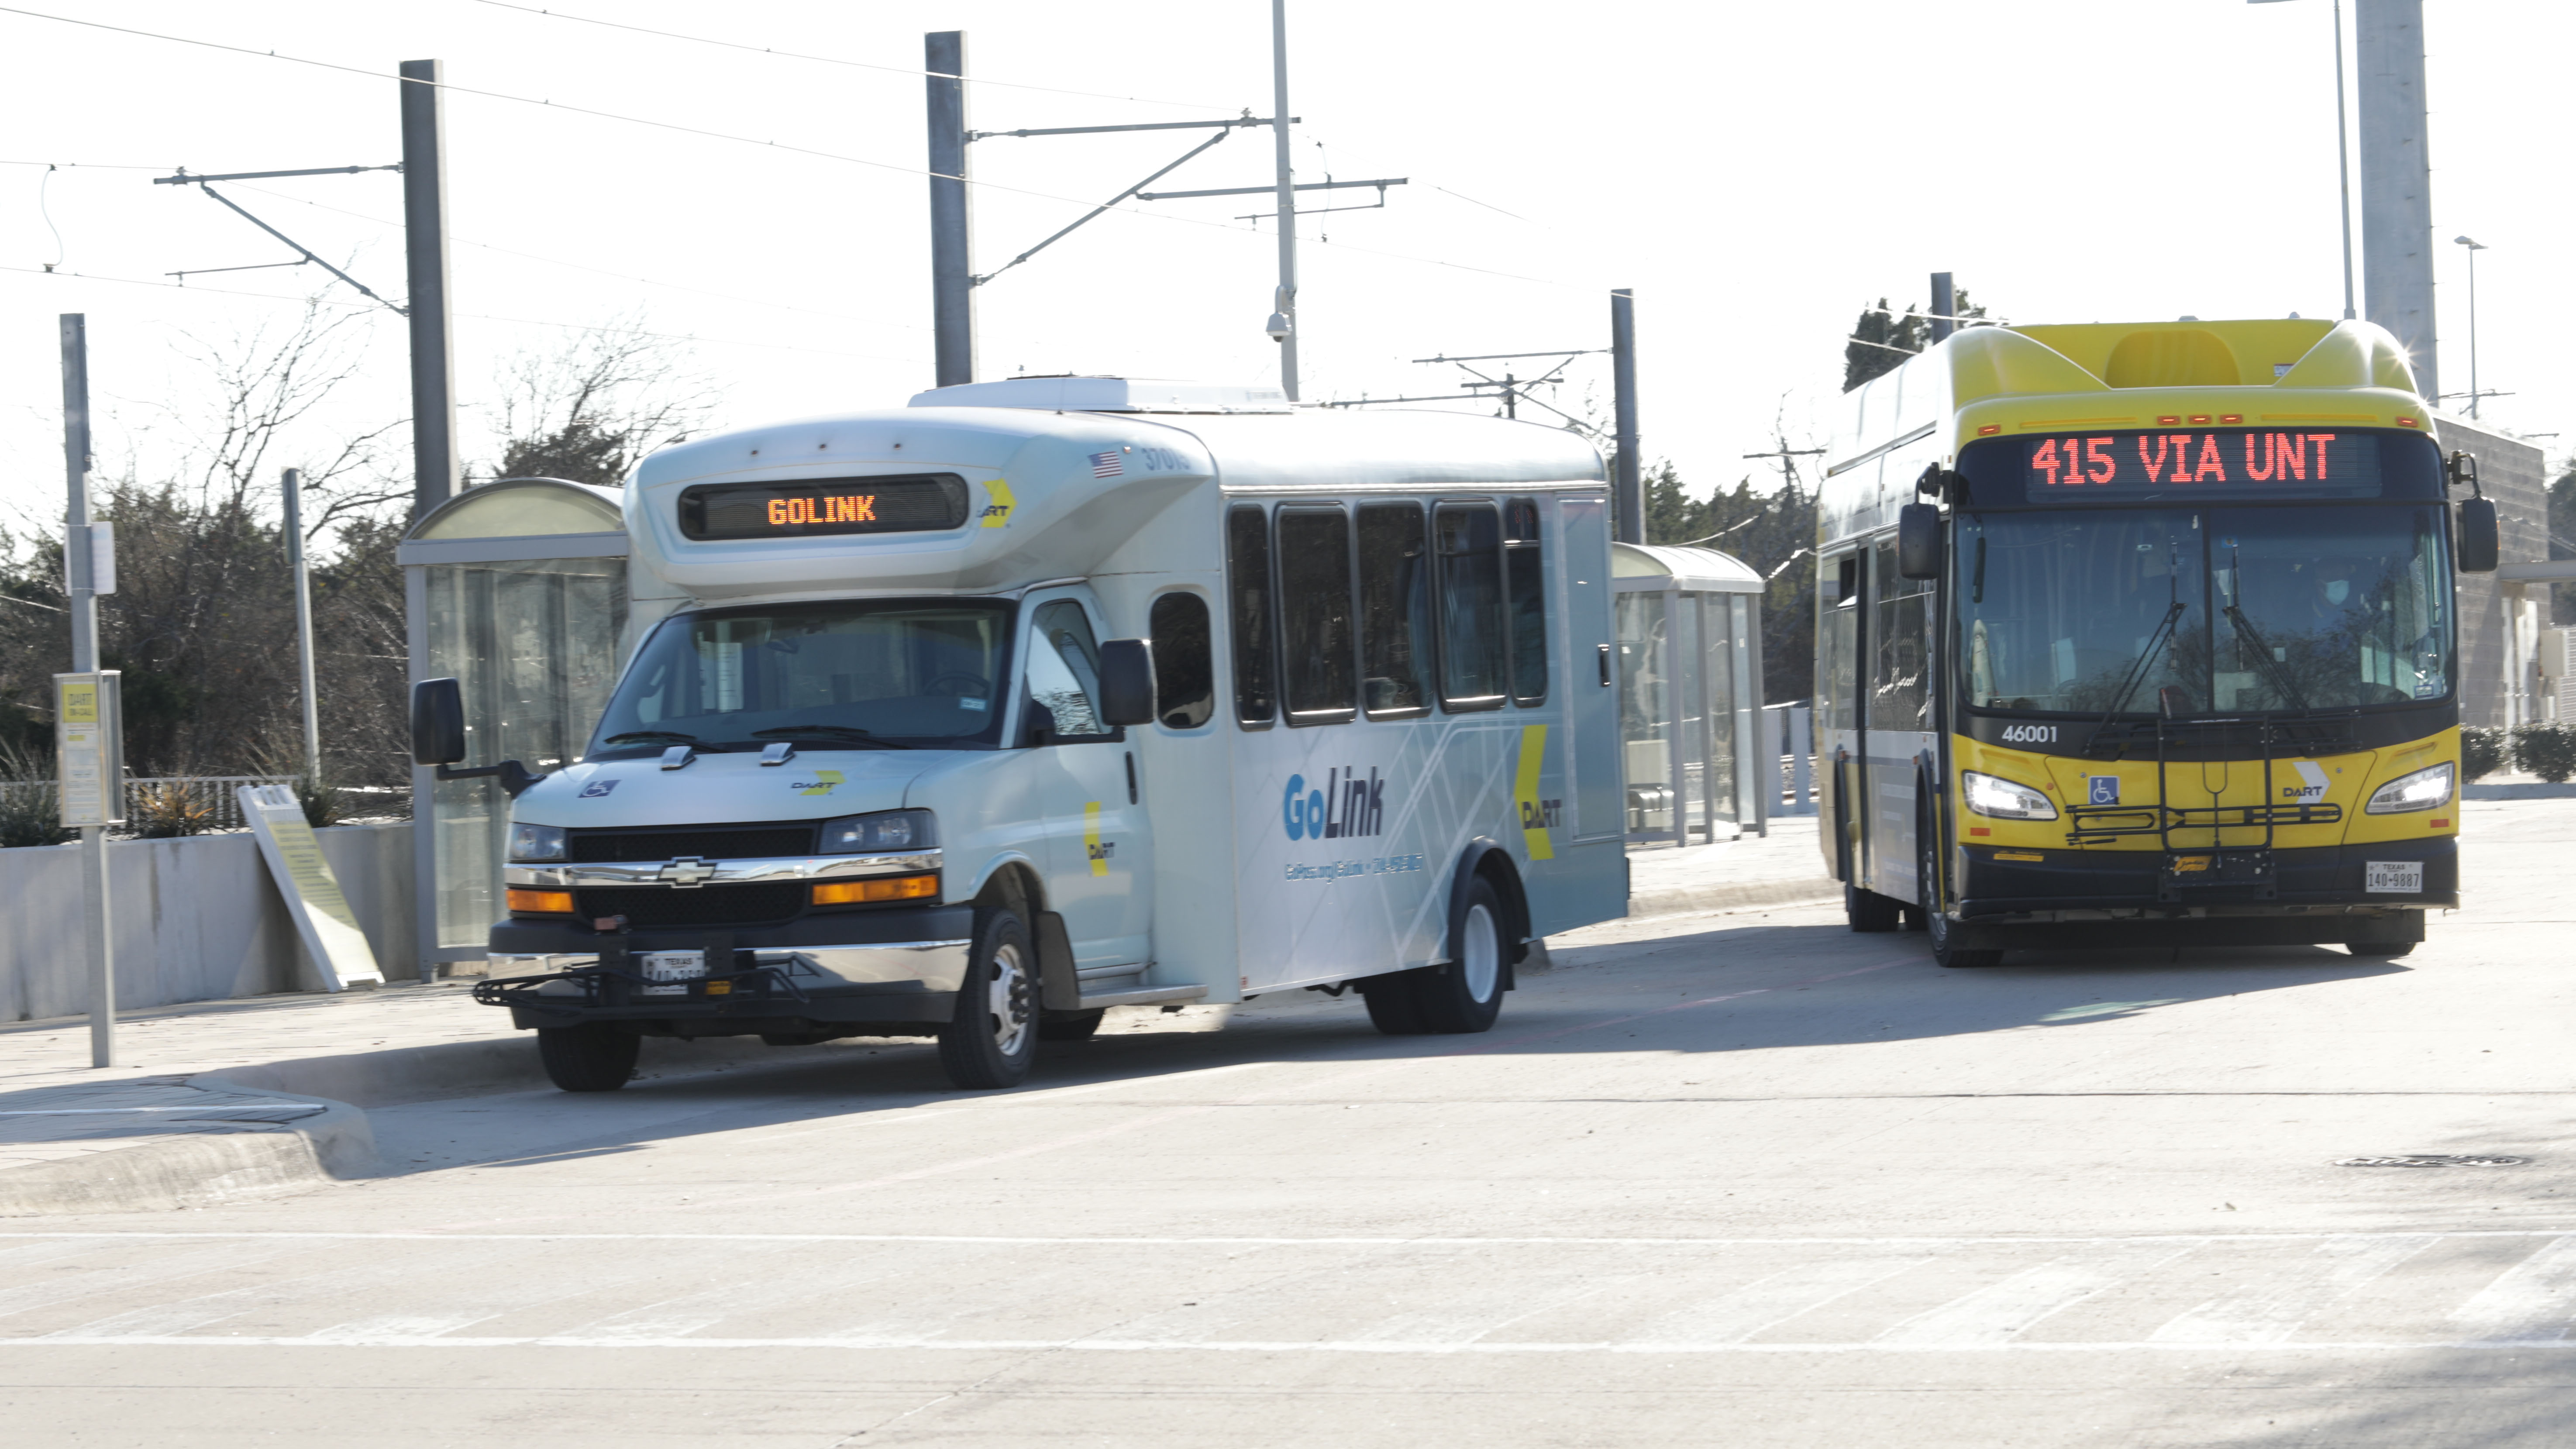 UNT Dallas Station - GoLink and DART bus